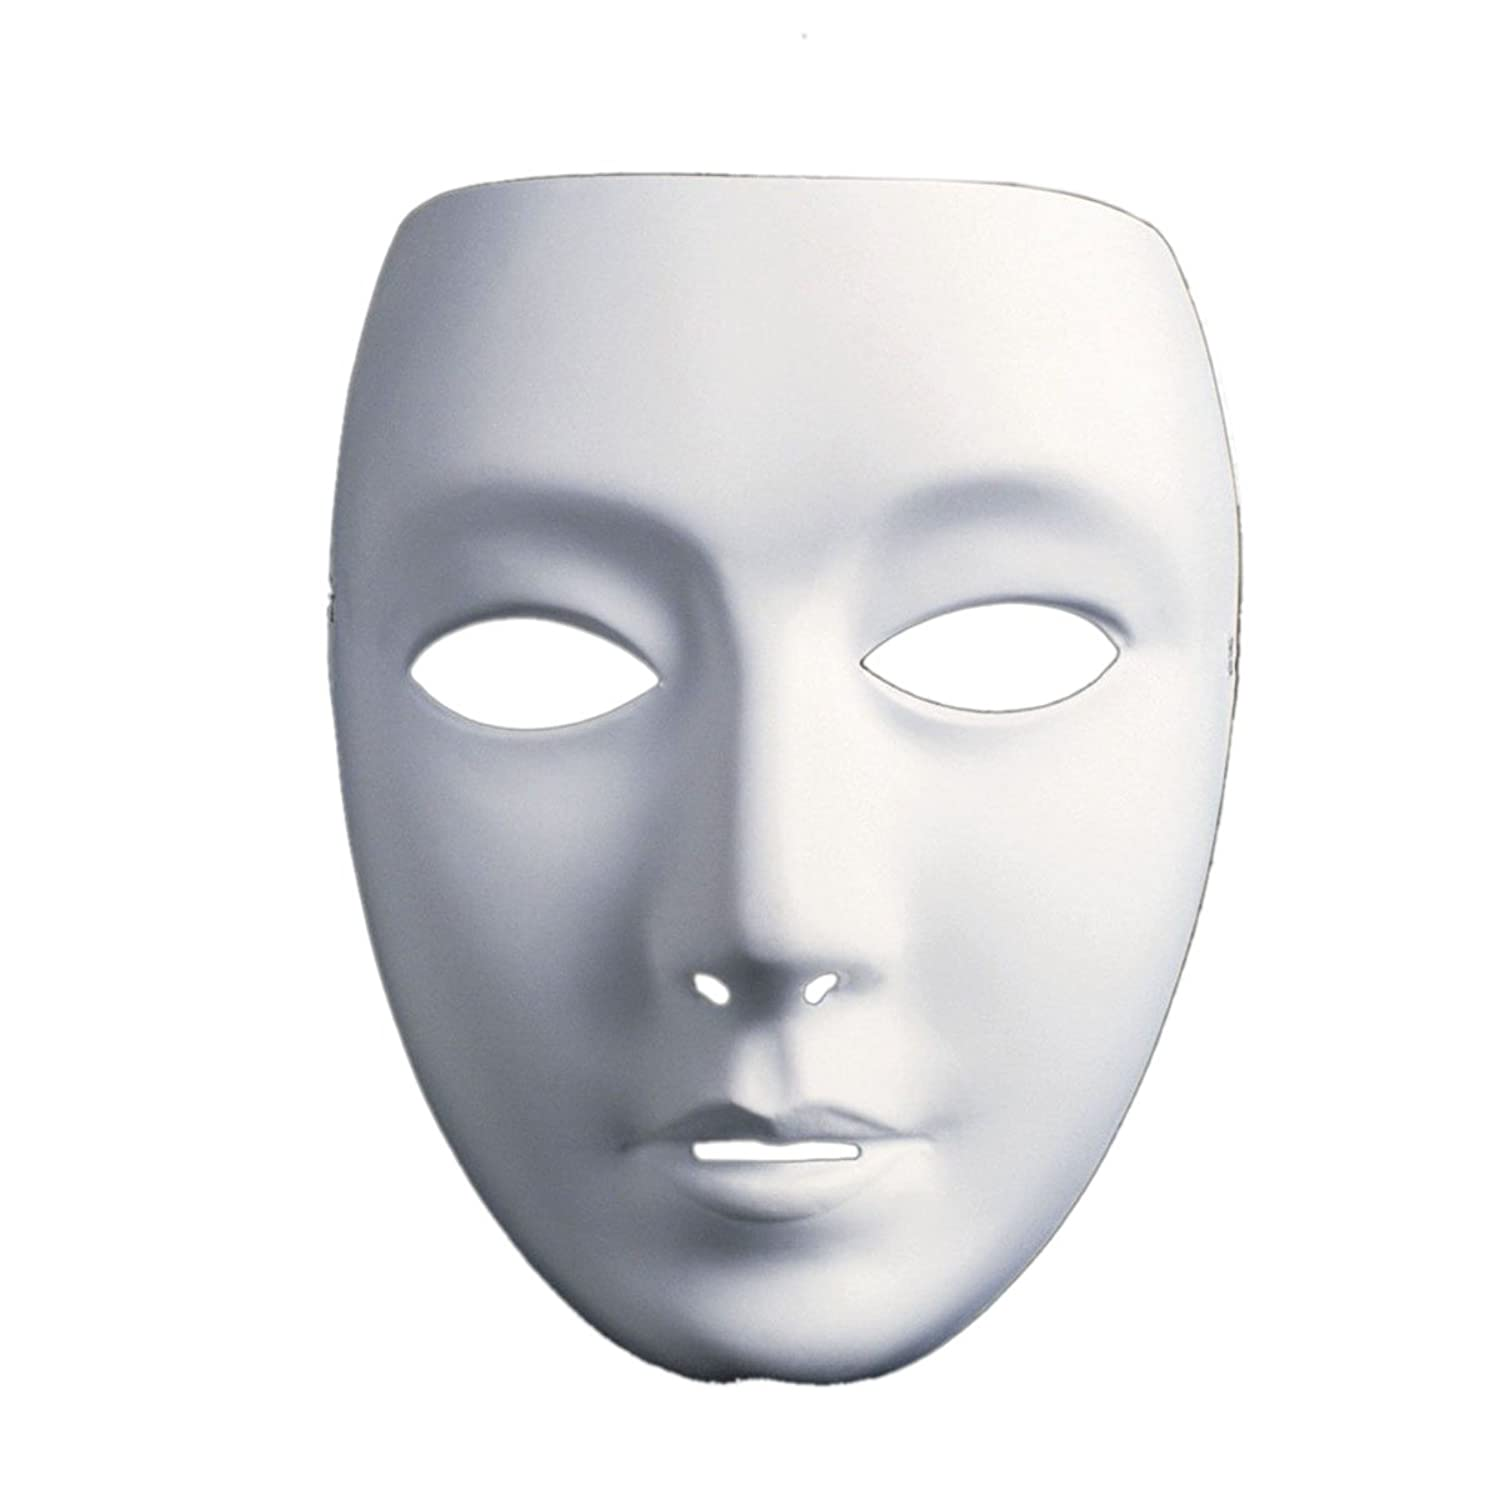 Amazon.com: Aszune Full Face Theater Mask, DIY Masquereade Mask For Party, Weddings, DIY Mardi Gras, Cosplay Costume, Anonymous Venetian Carnival Mask and ...